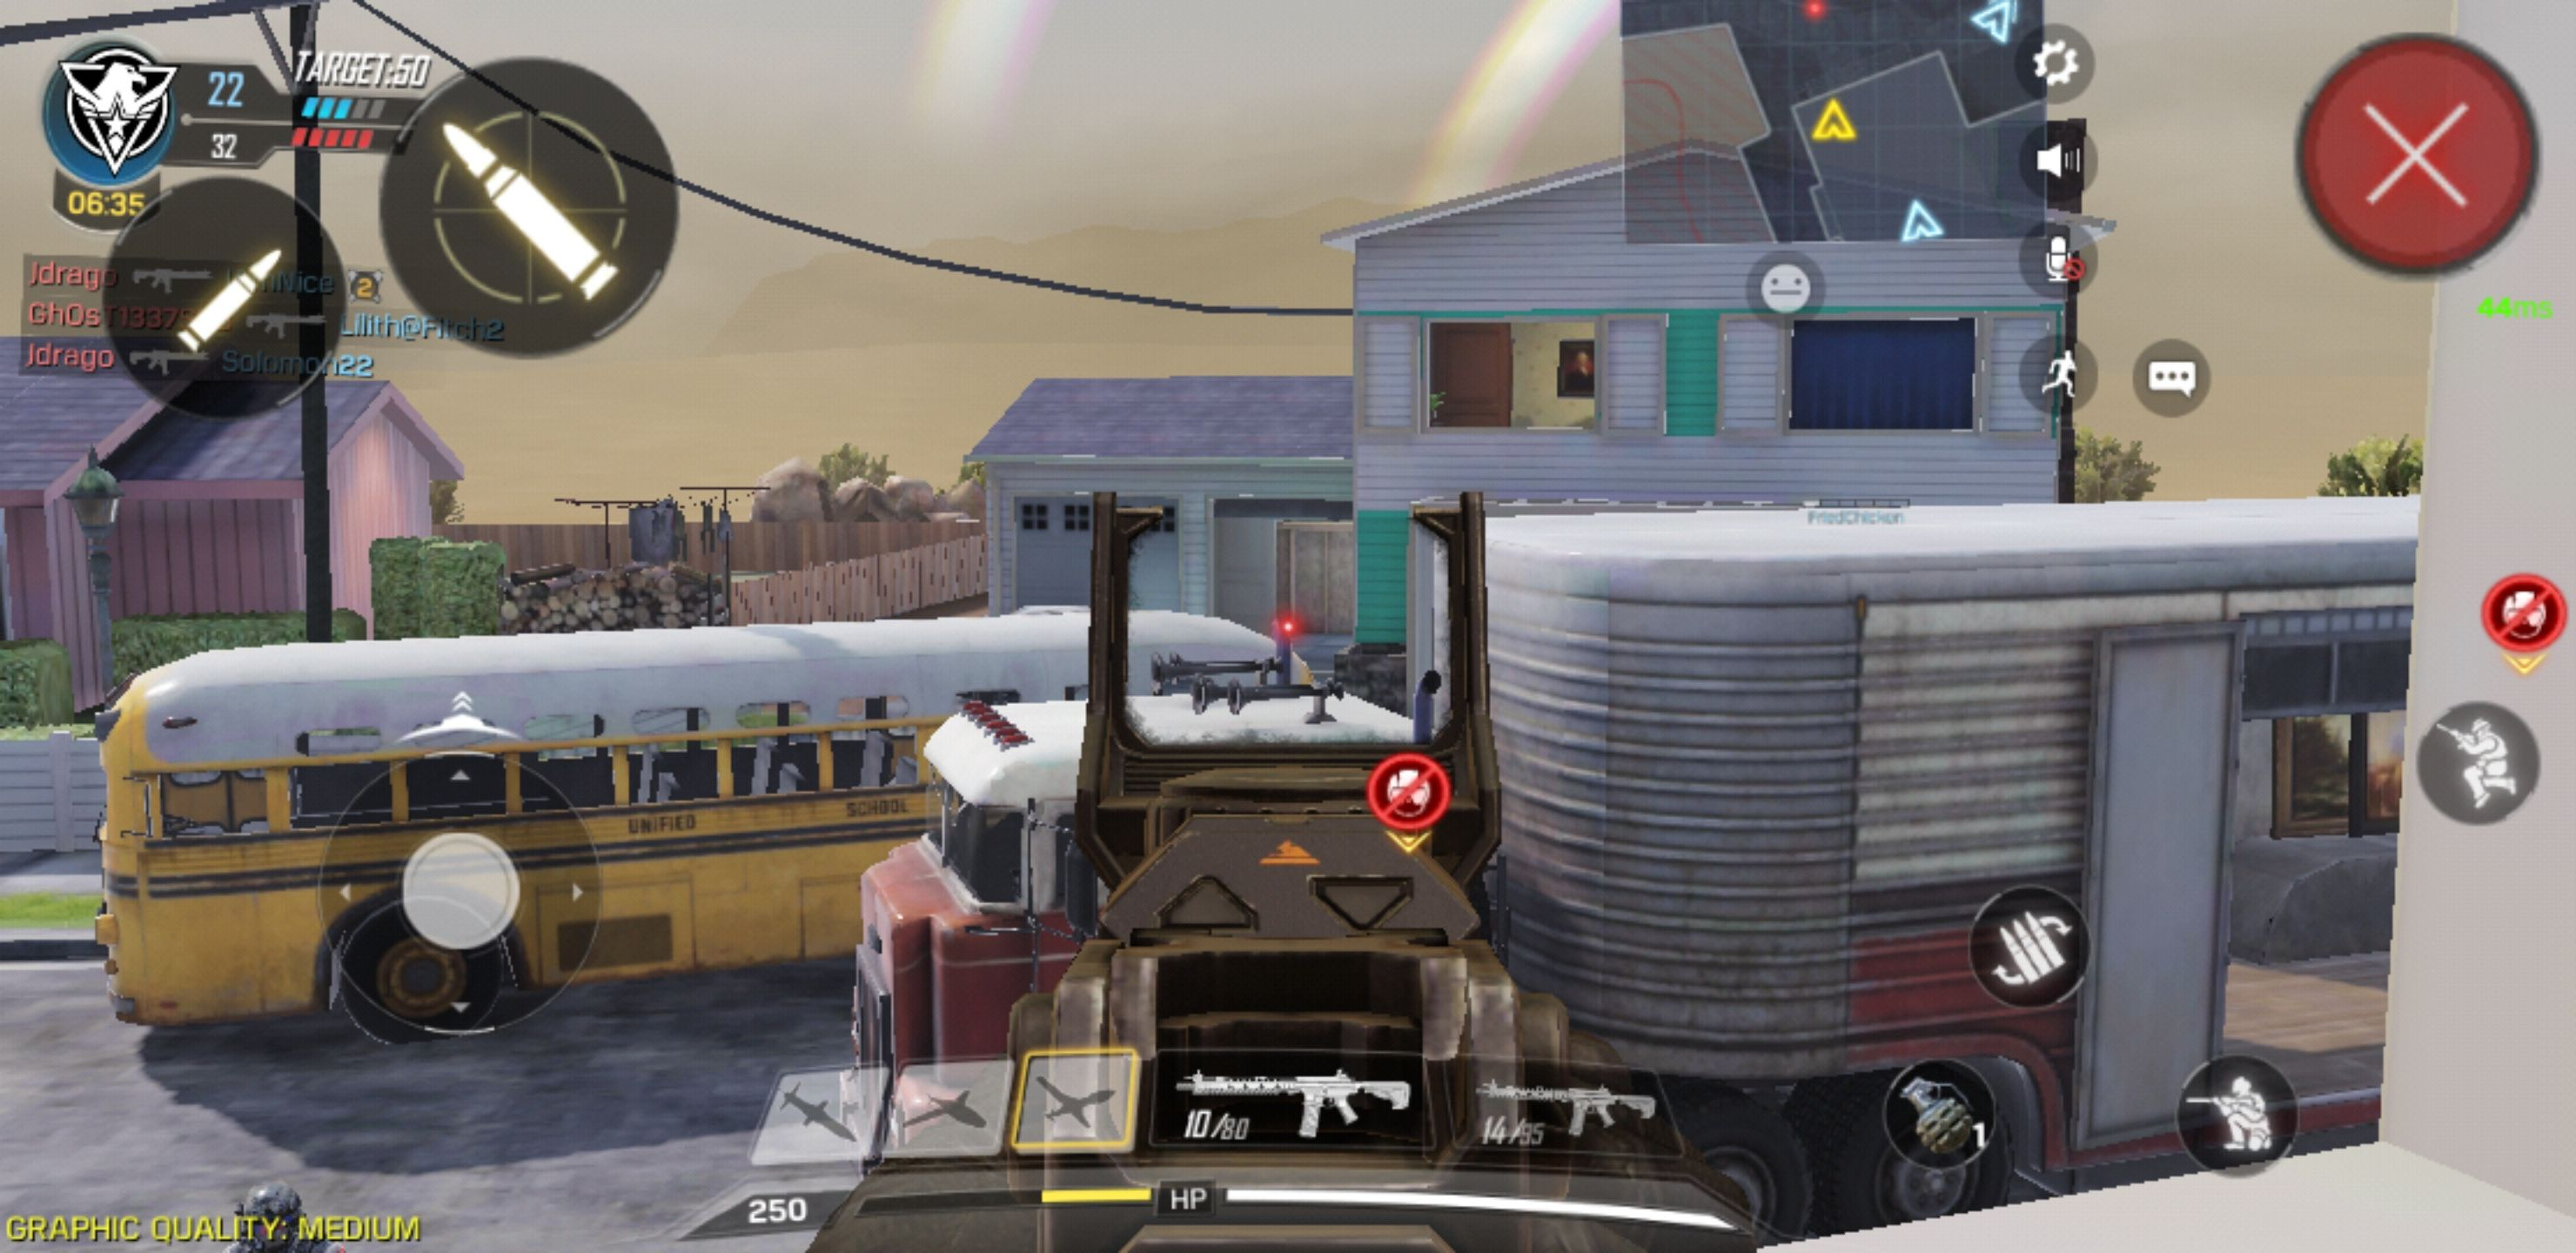 Call of Duty Multiplayer mode Call of duty, Call of duty